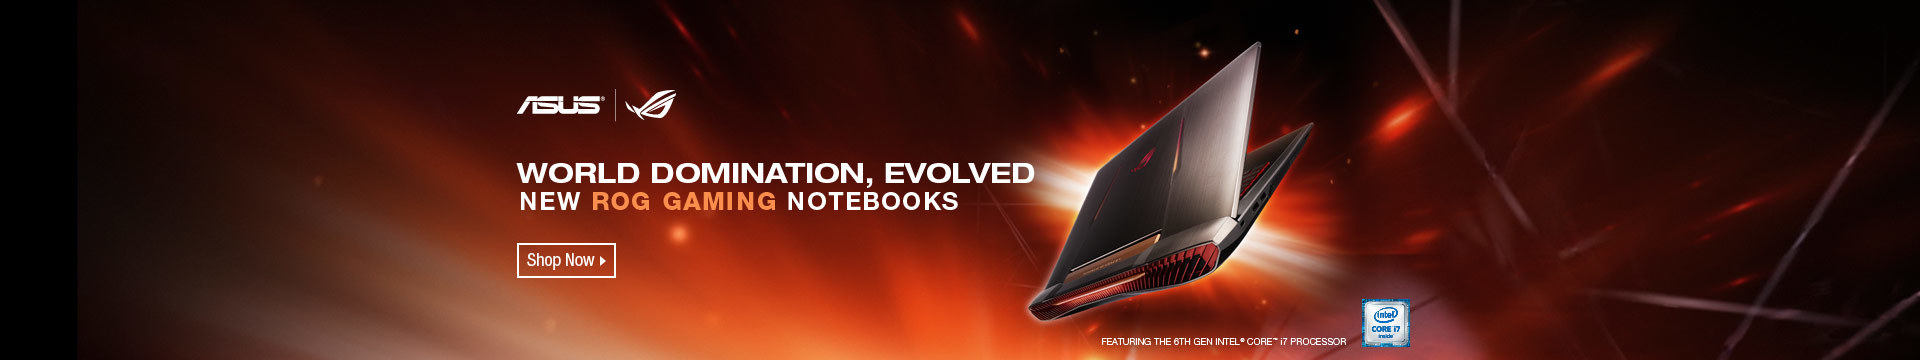 ASUS WORLD DOMINATION, EVOLVED